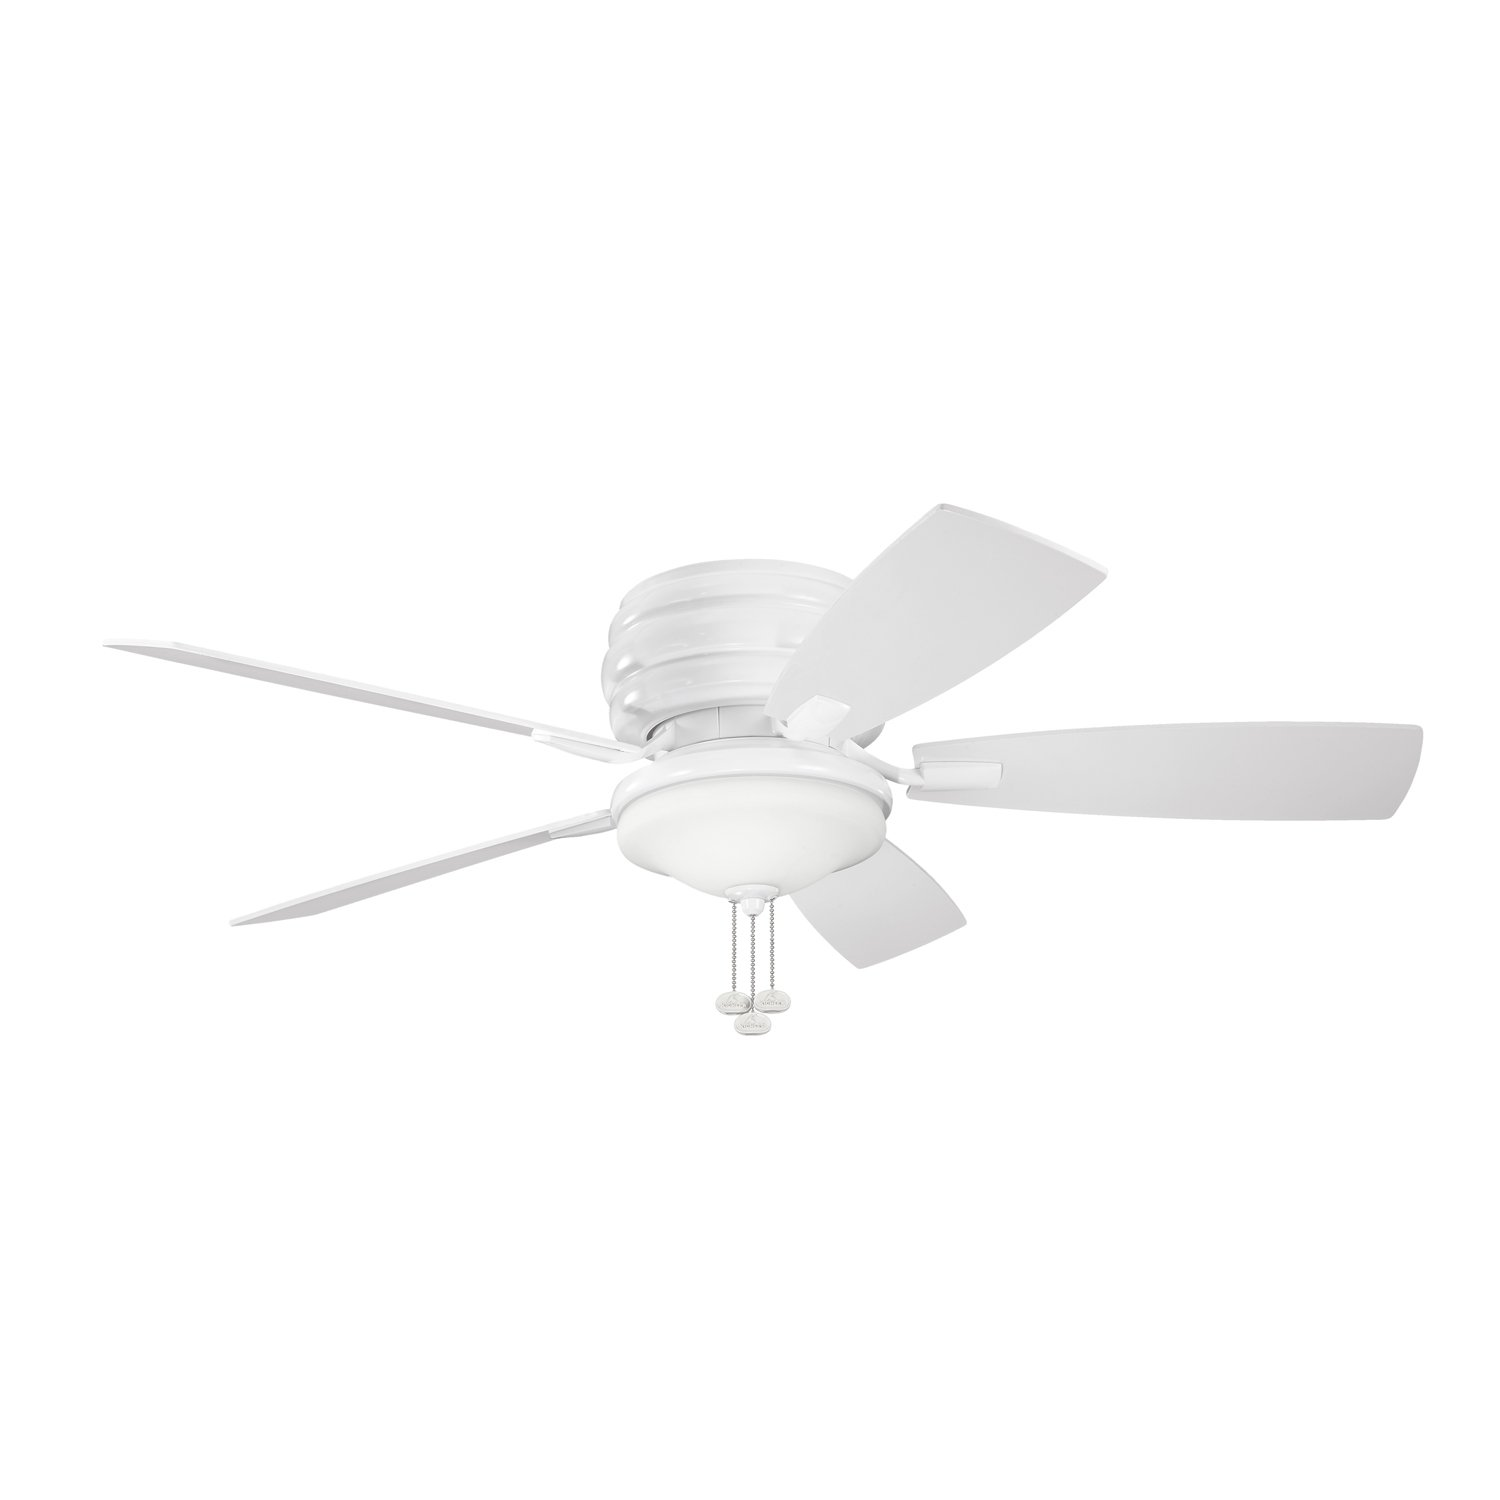 Kichler WH 52 Ceiling Fan Coat Women Sale Amazon